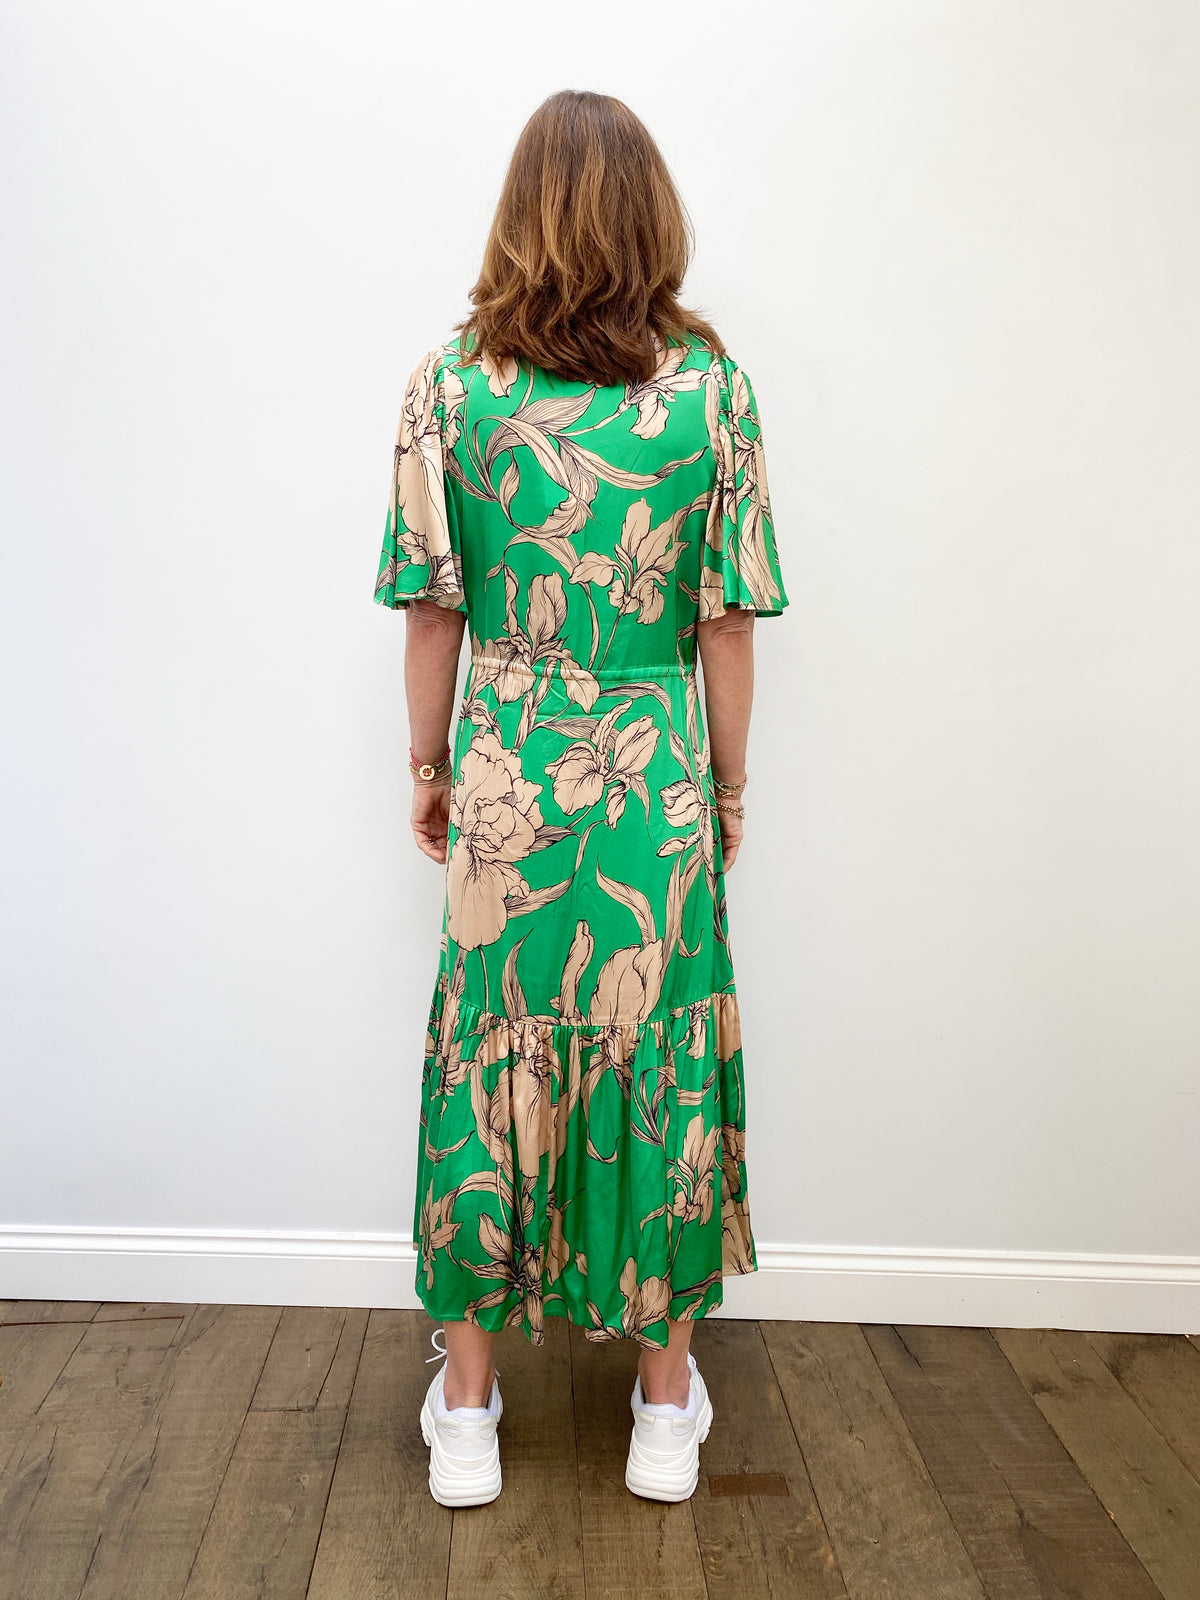 M Tanta Dress in Green